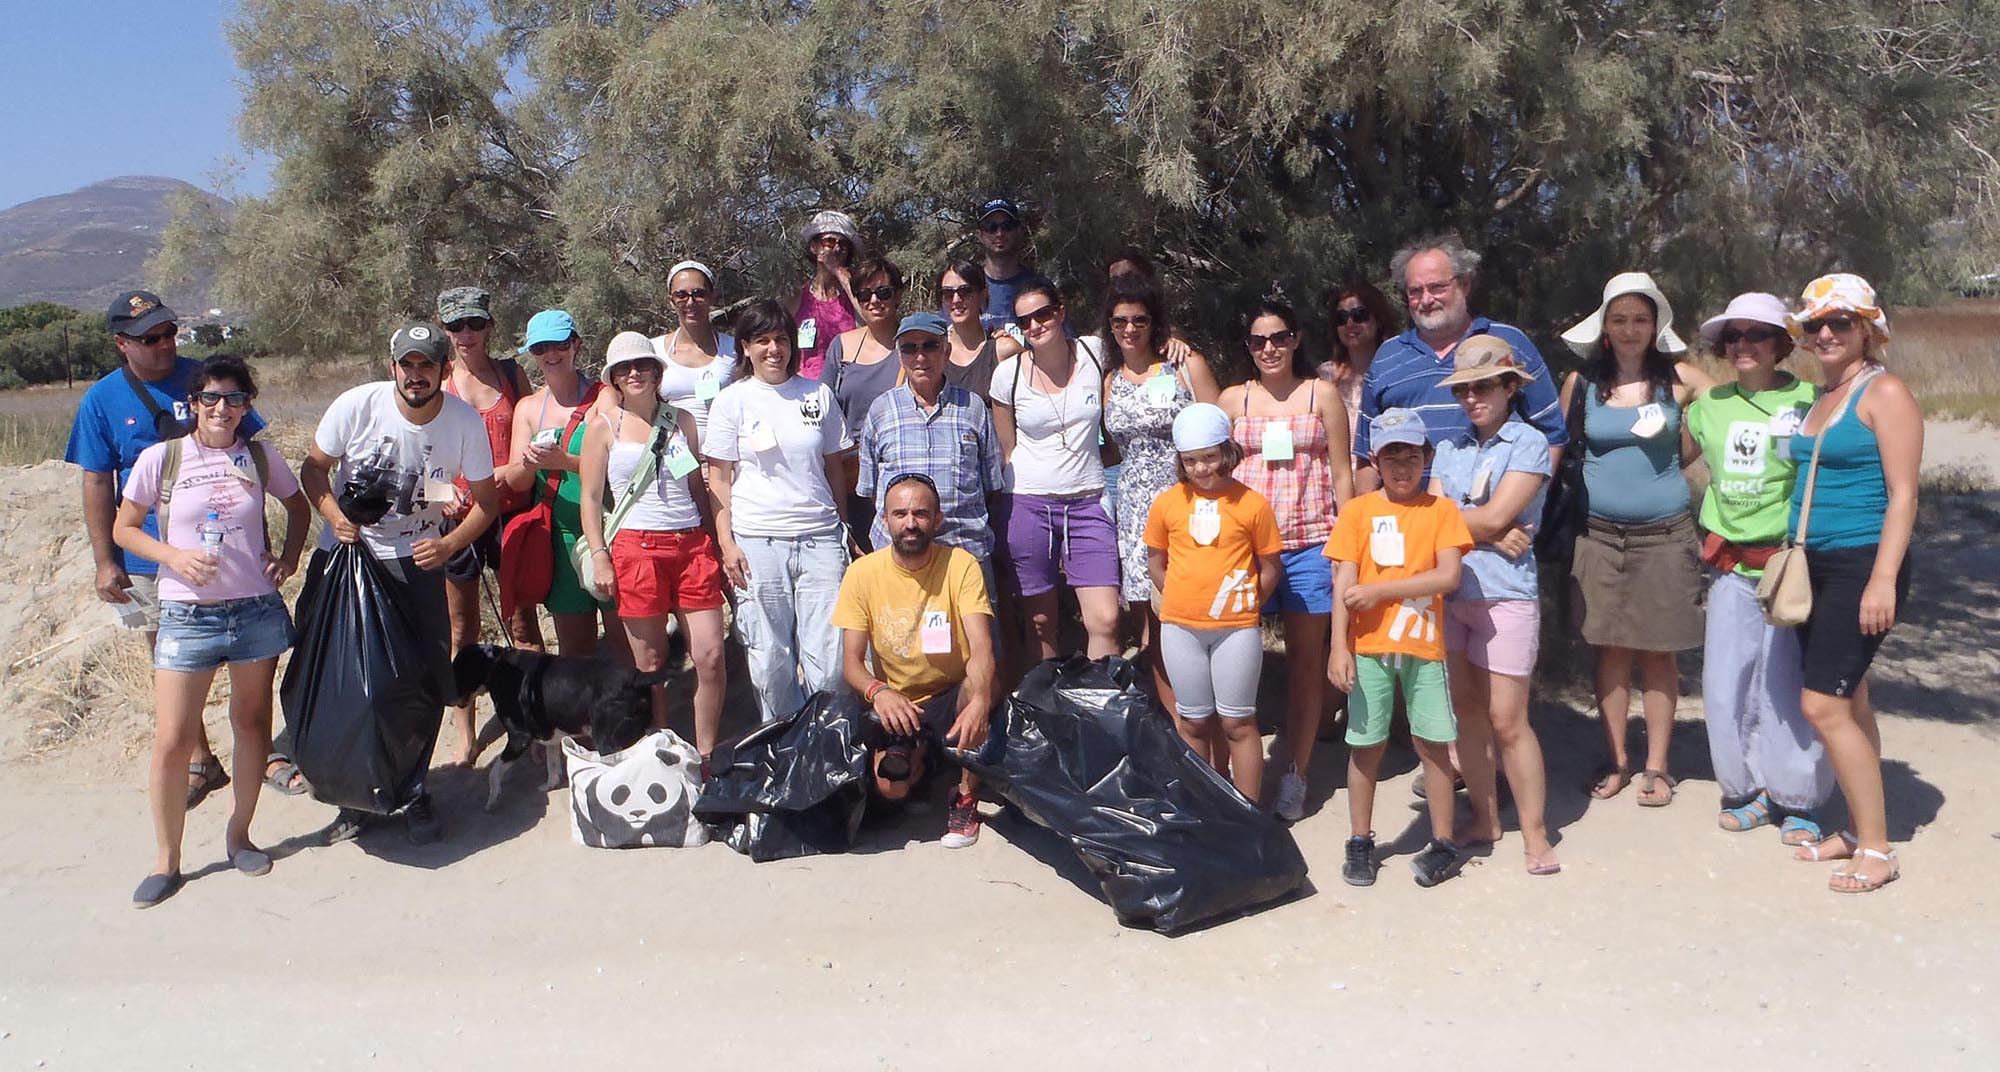 'A Morning in Molos's Wetland: Environmental act for children and adults under the voluntary program of WWF Hellas Network for Monitoring Paros Wetlands' with Maria Noidou, 2013